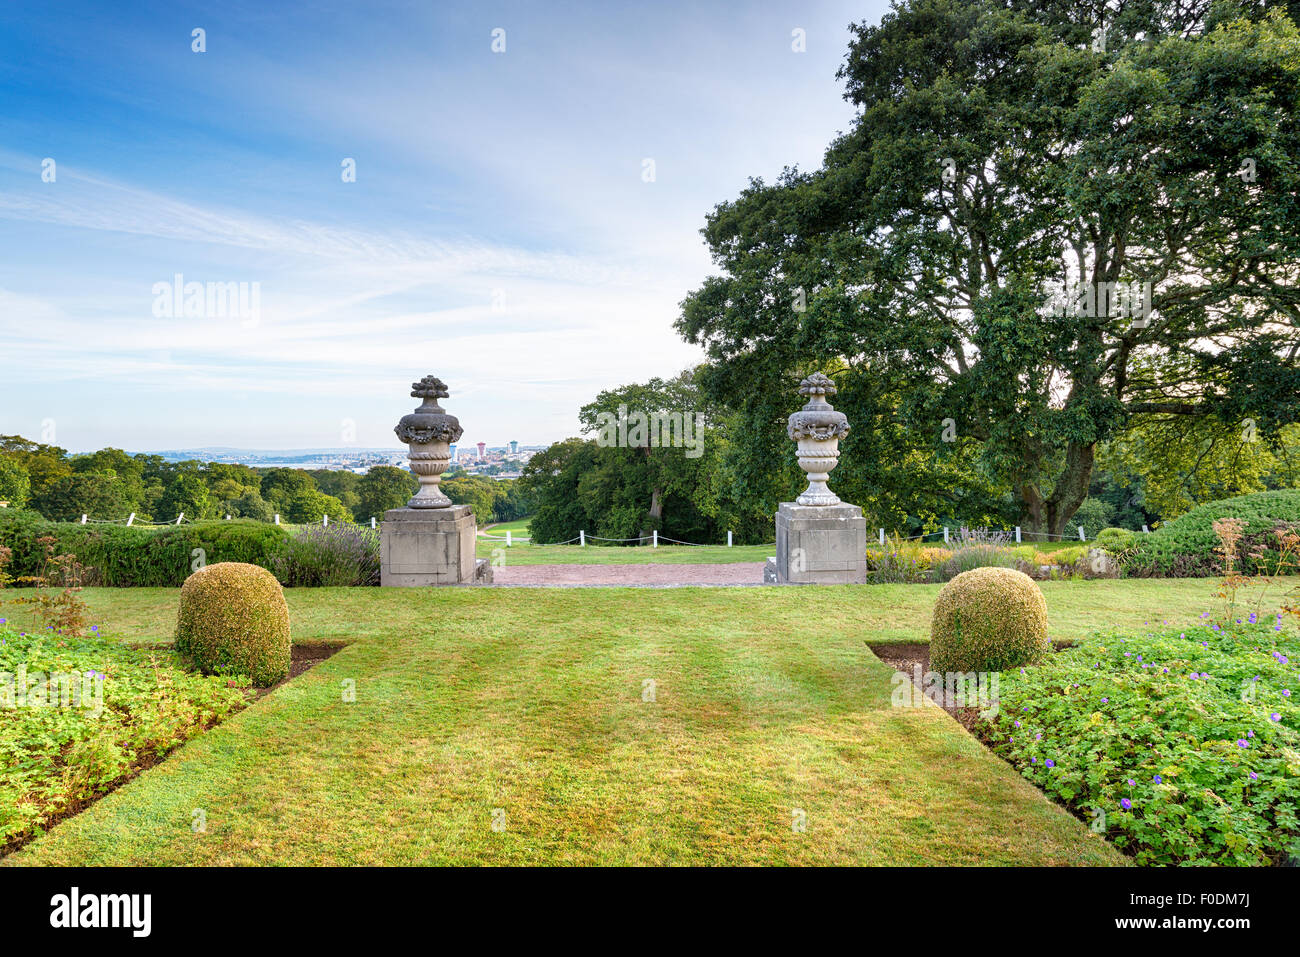 Formal gardens in a stately home - Stock Image